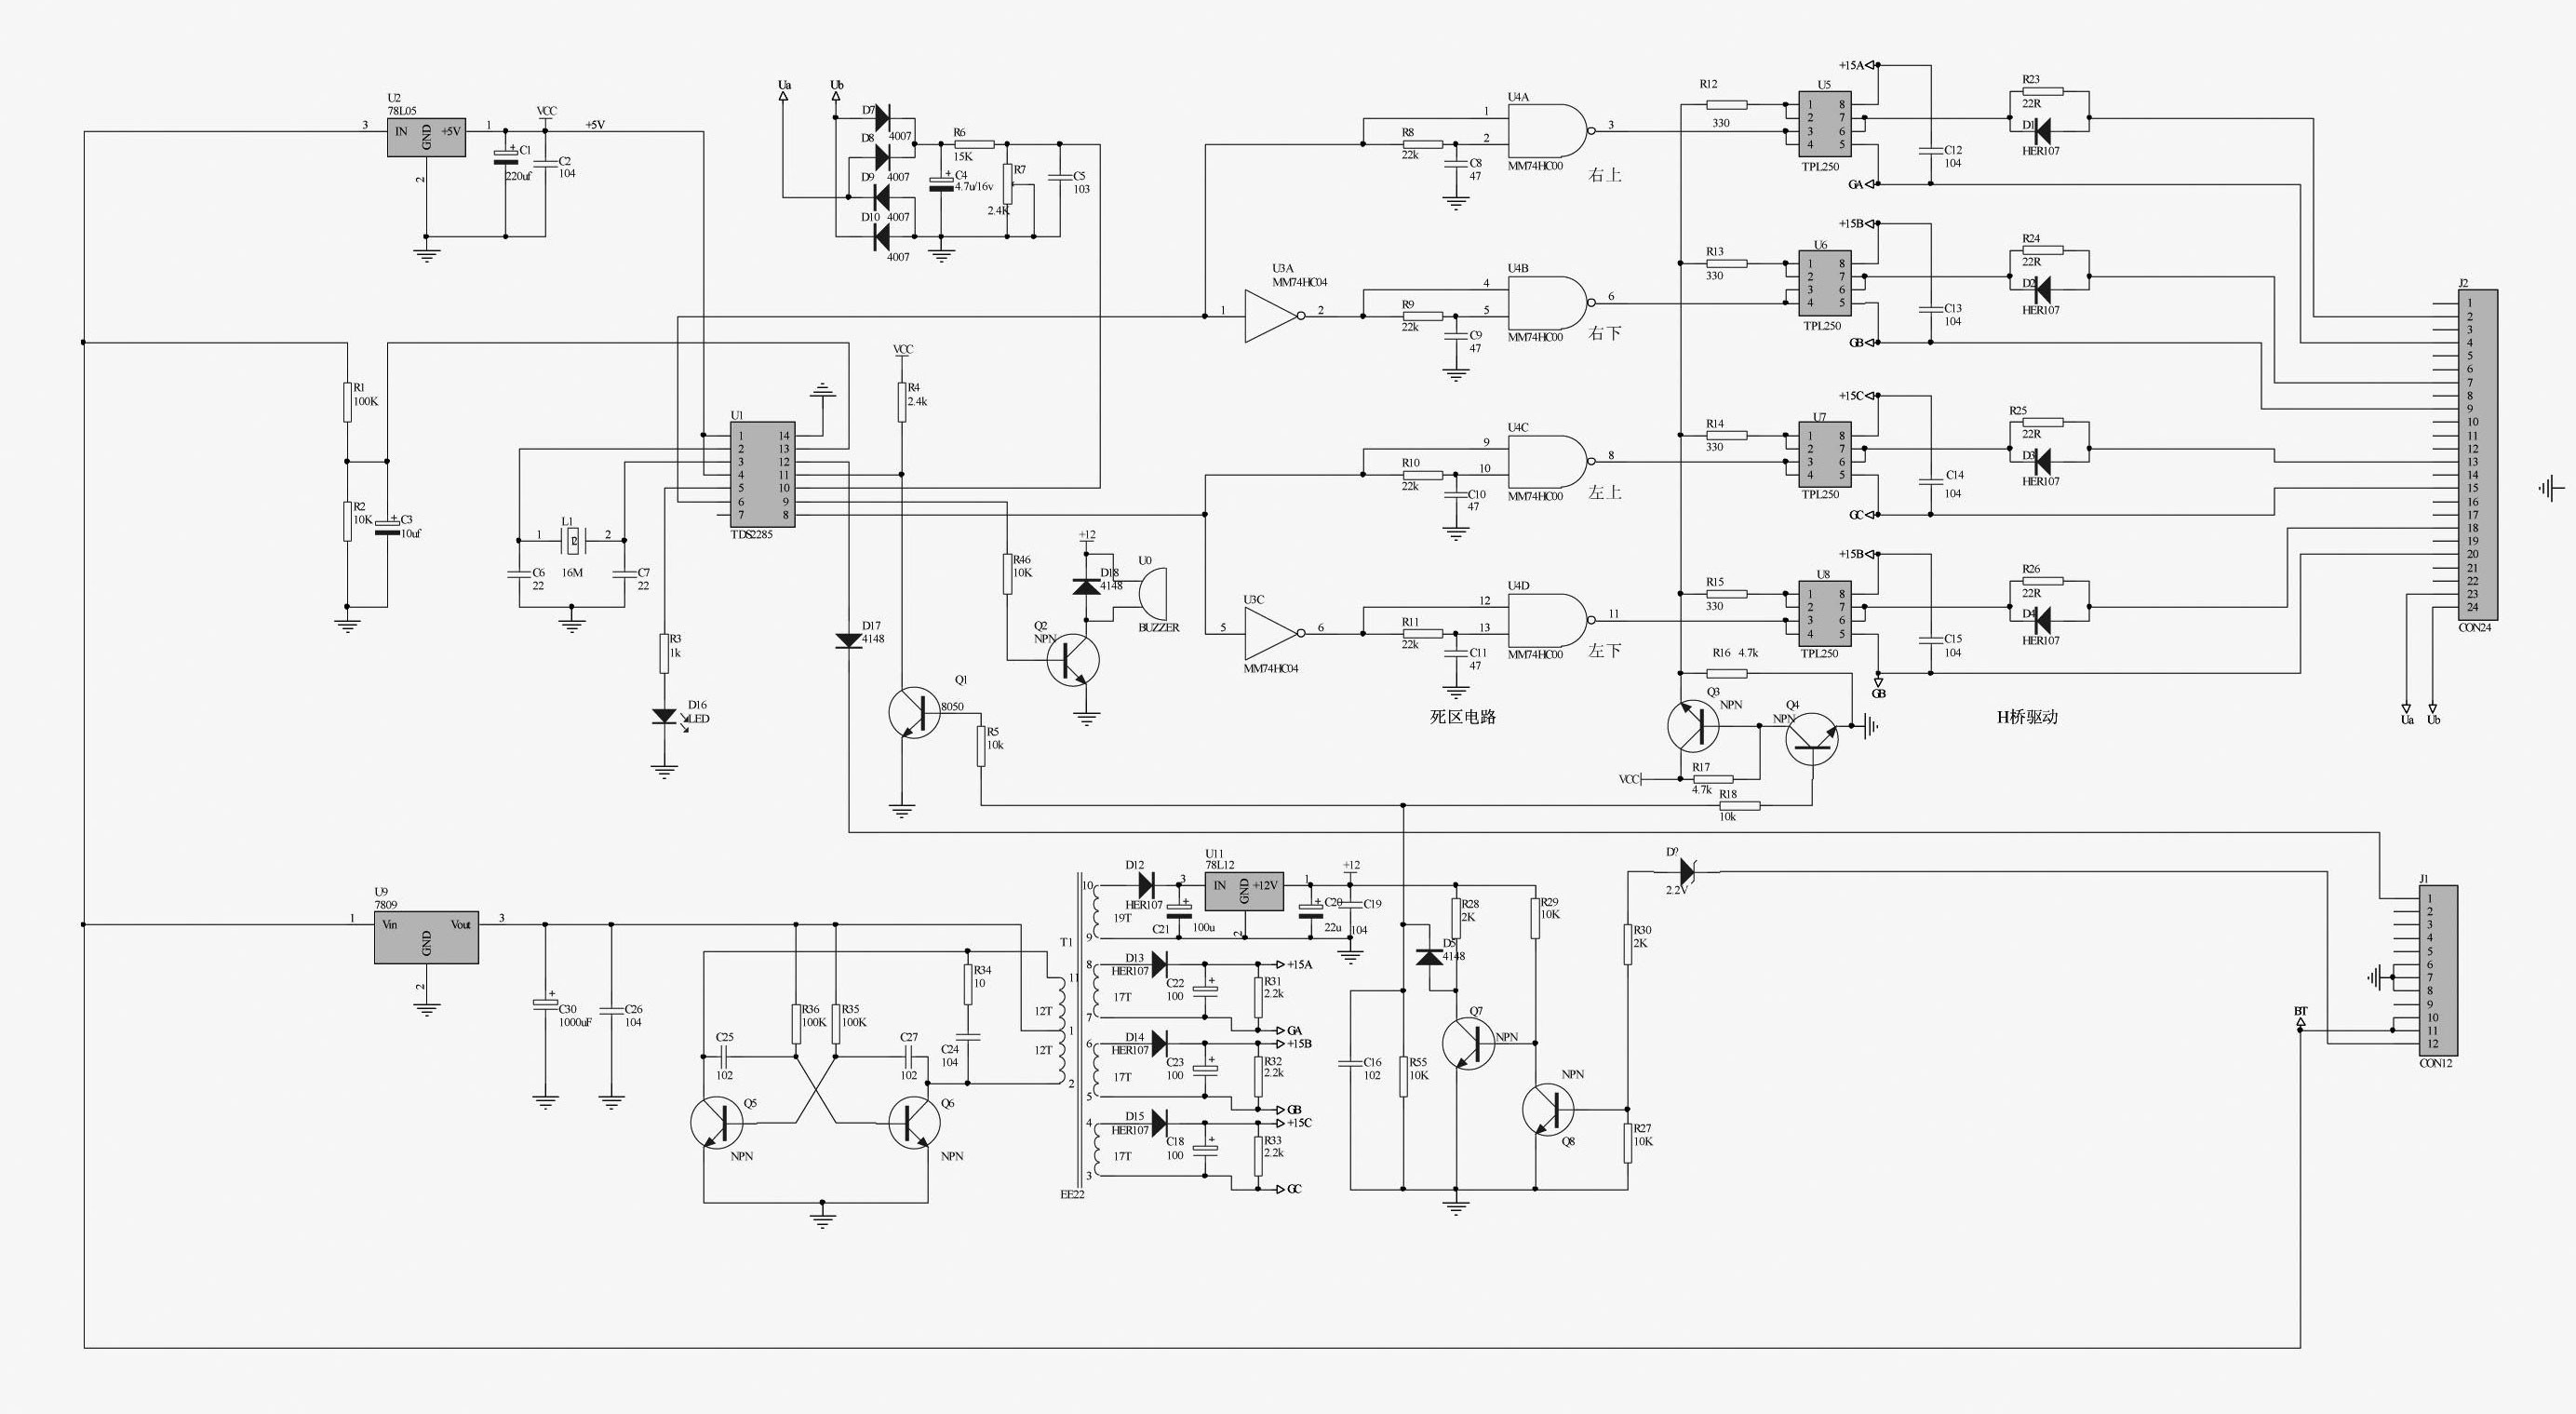 Car inverter circuit diagram getting started with littlebits sanea car inverter circuit diagram getting started with littlebits sanea inverter wiring diagram asfbconference2016 Images